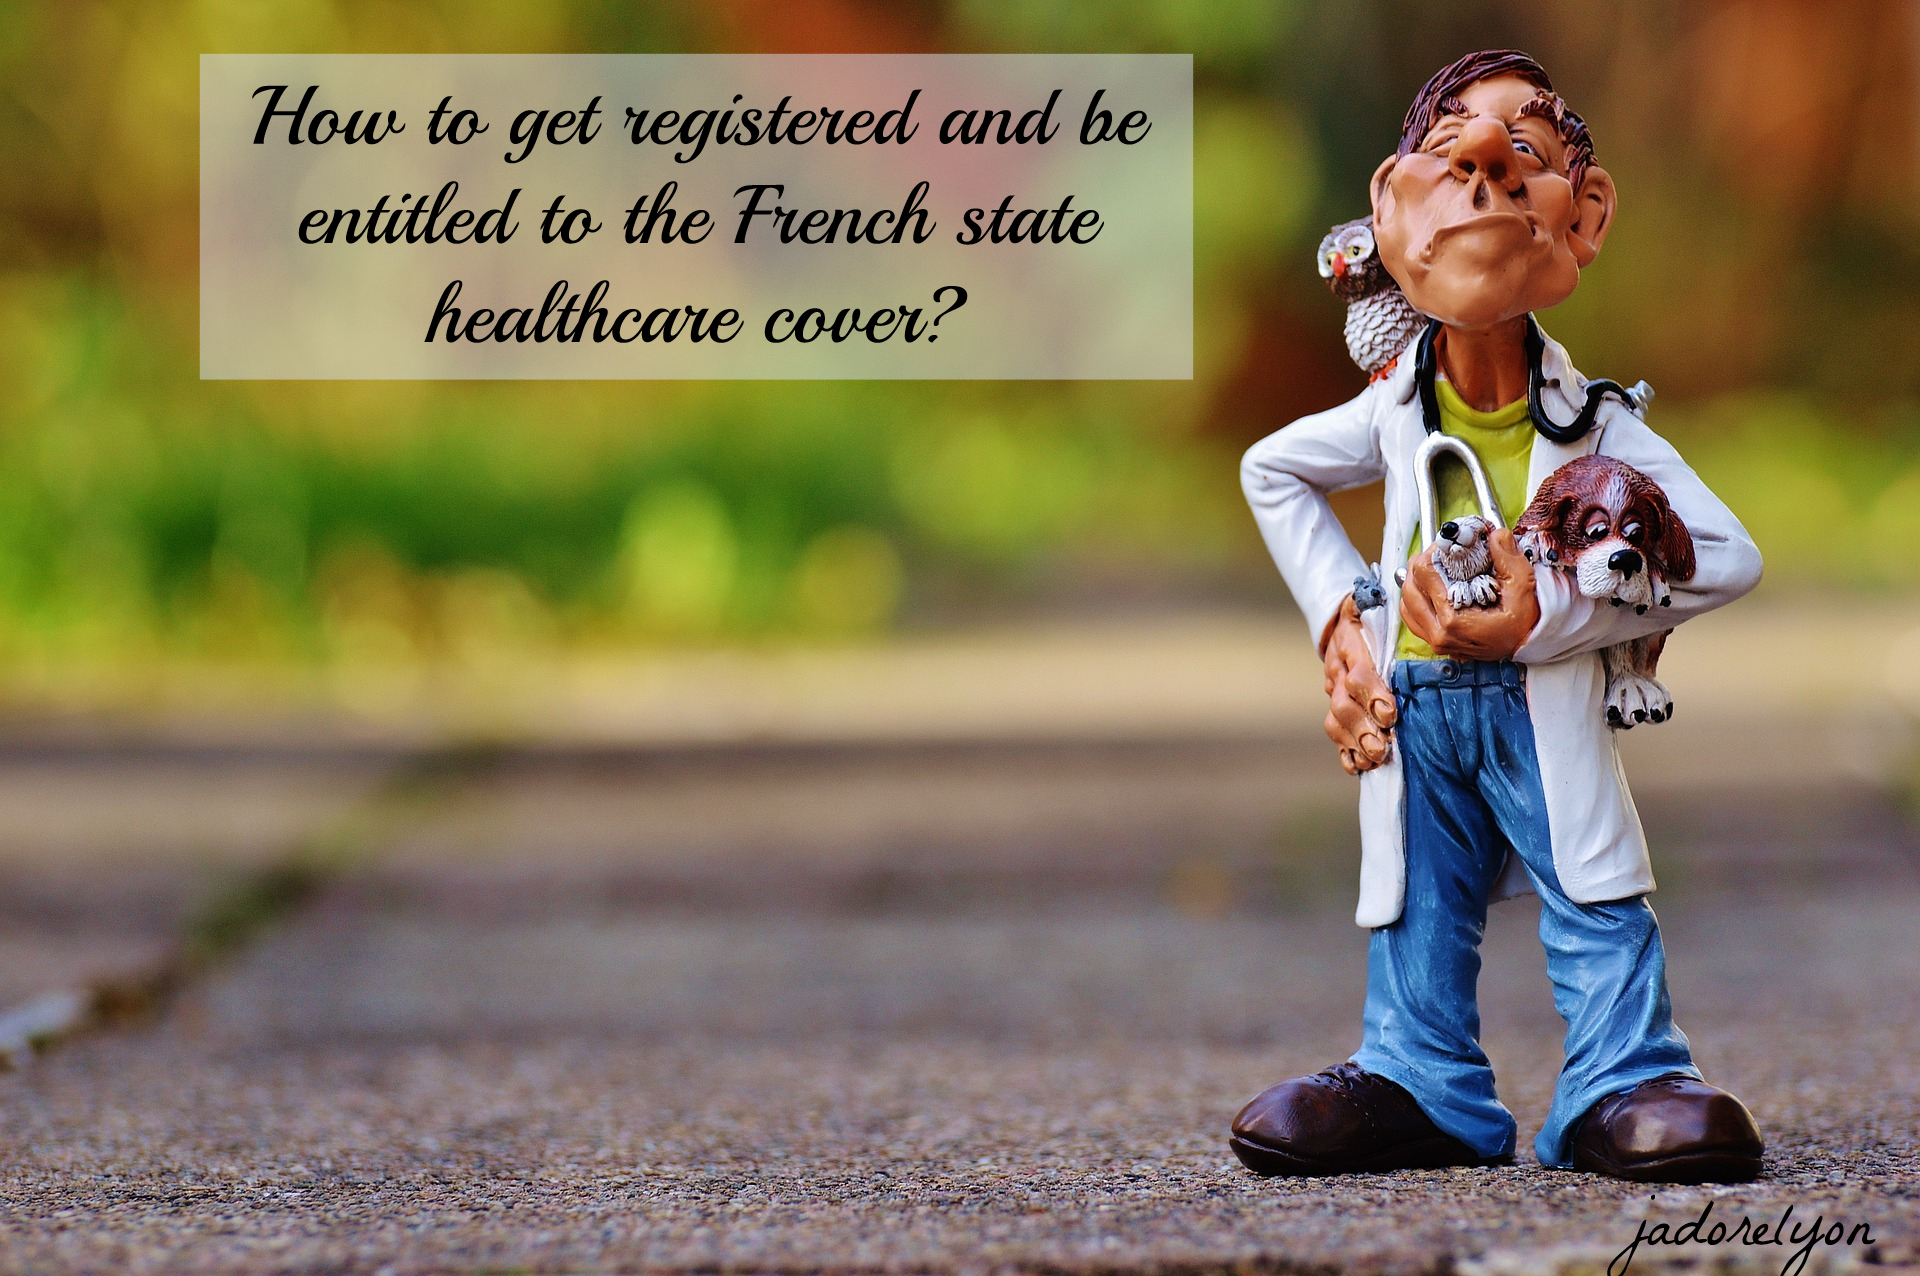 How to get registered and be entitled to the French state healthcare cover_